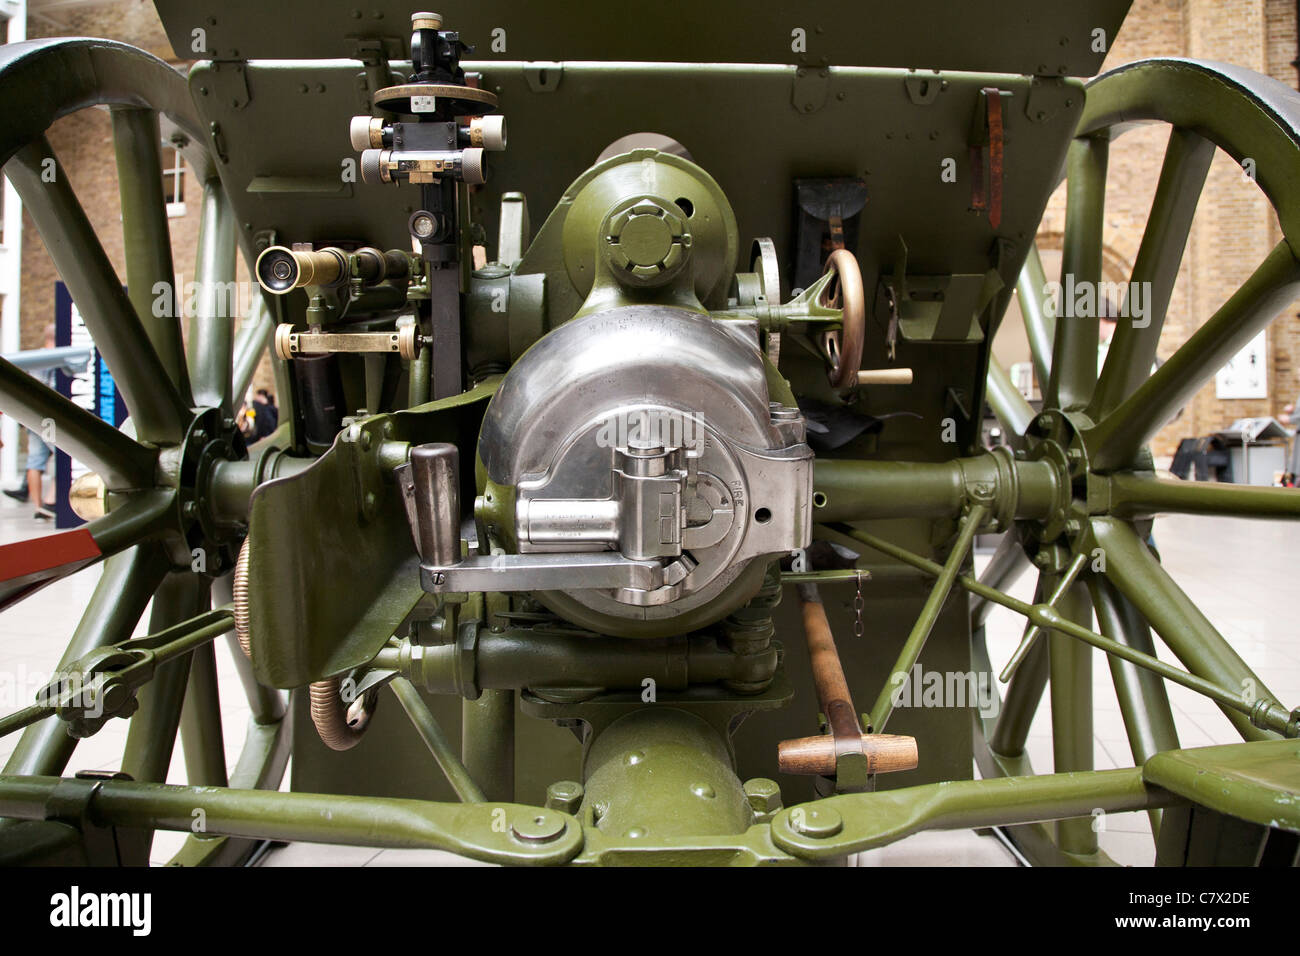 The rear of a British field gun artillery piece in the Imperial War Museum London. - Stock Image